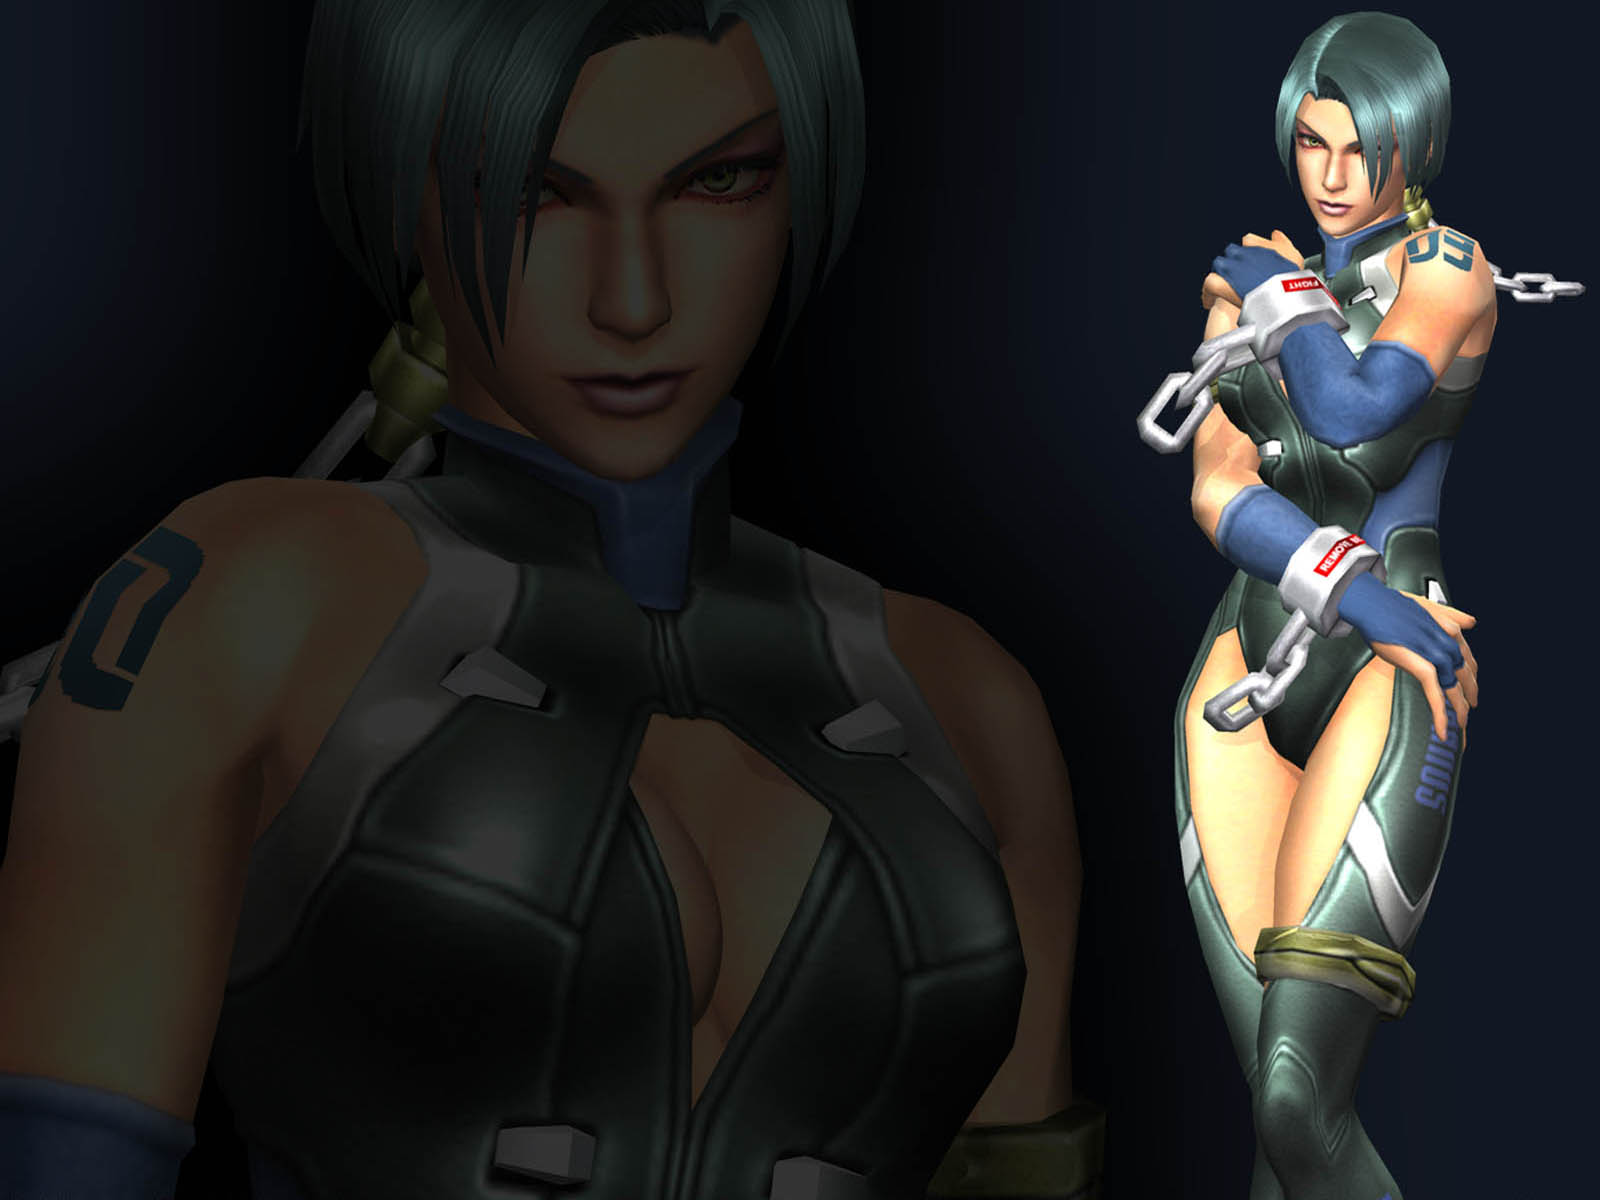 Bloody roar hentai was